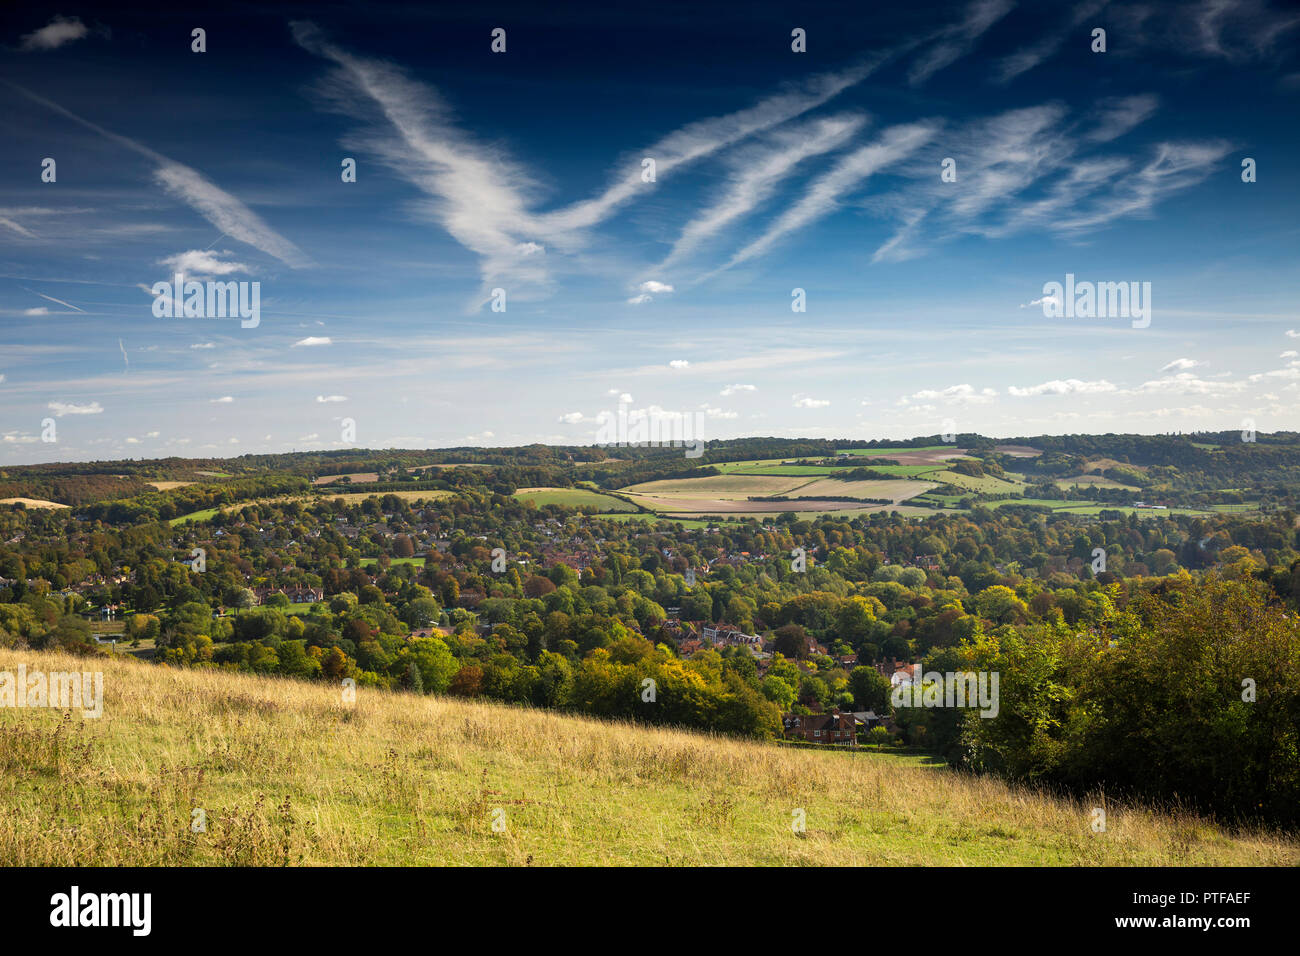 England, Berkshire,  Streatley, Lardon Chase overlooking the Goring Gap - Stock Image